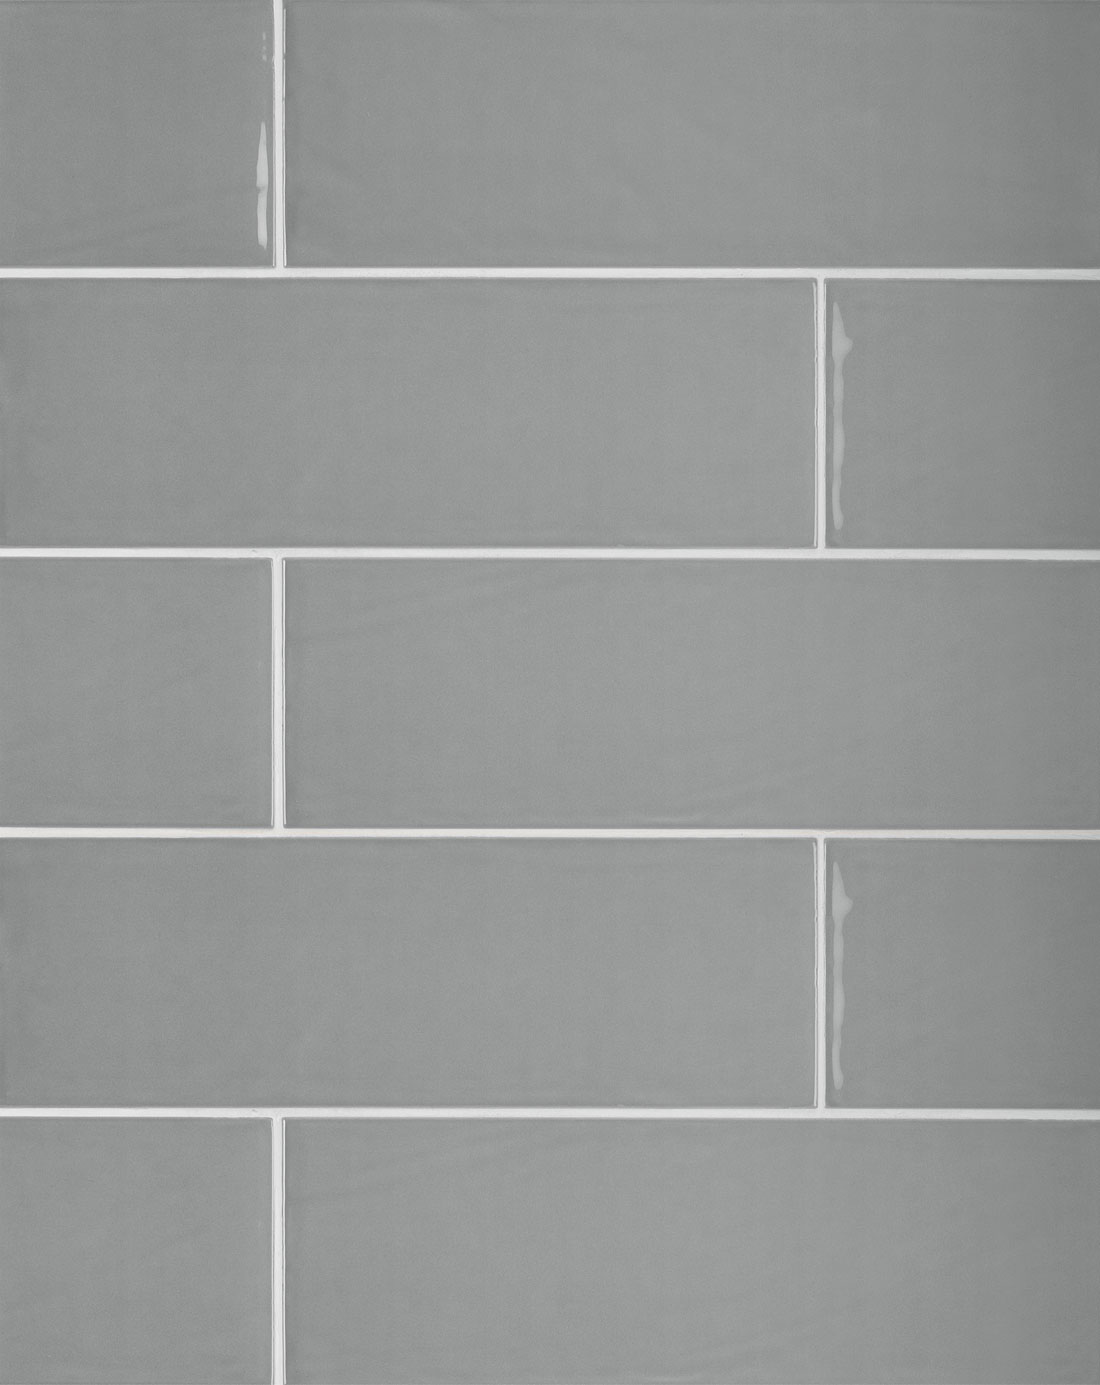 ripple antique grey bulevar ripple antique grey wall tile   kitchen tiles direct  rh   kitchentilesdirect com